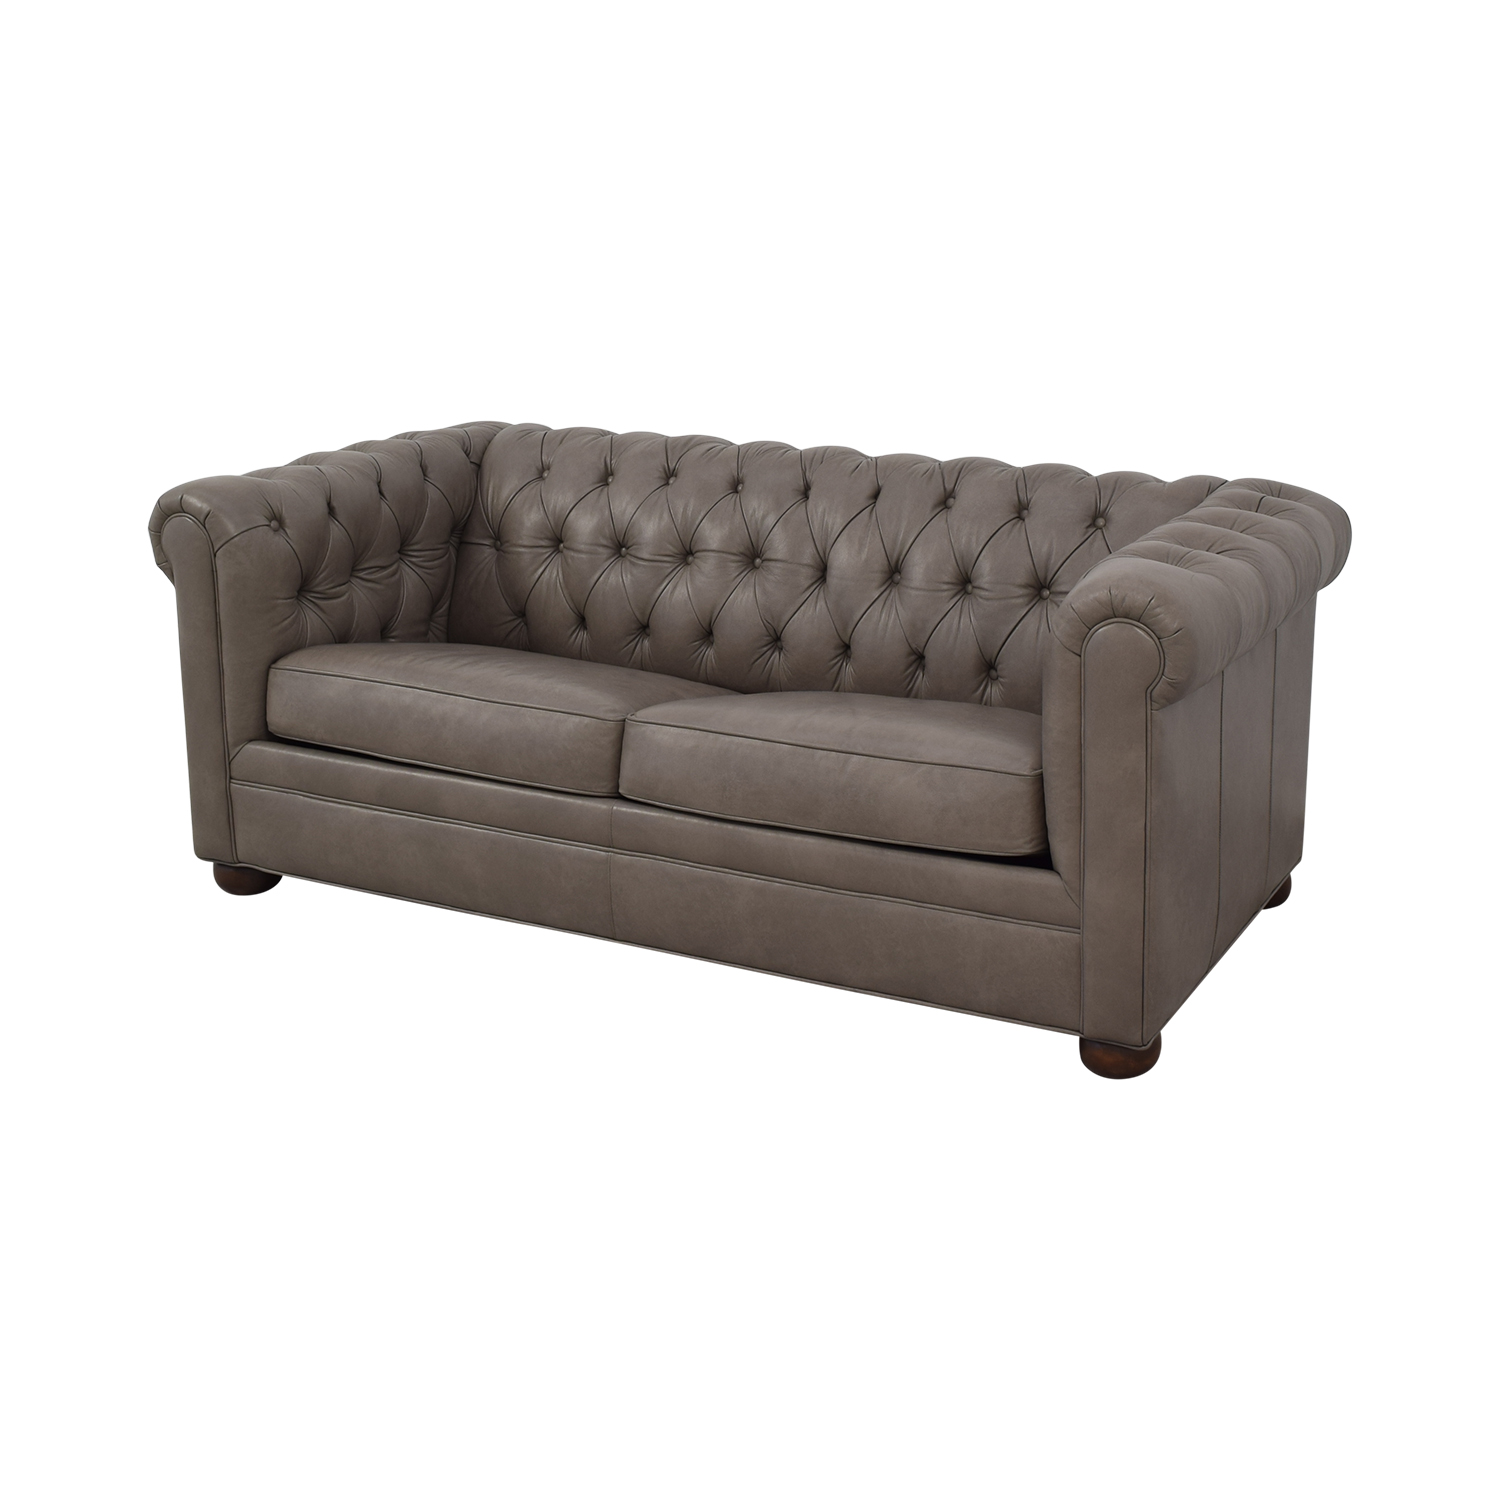 buy Club Furniture Leather Chesterfield Sleeper Sofa Club Furniture Sofa Beds